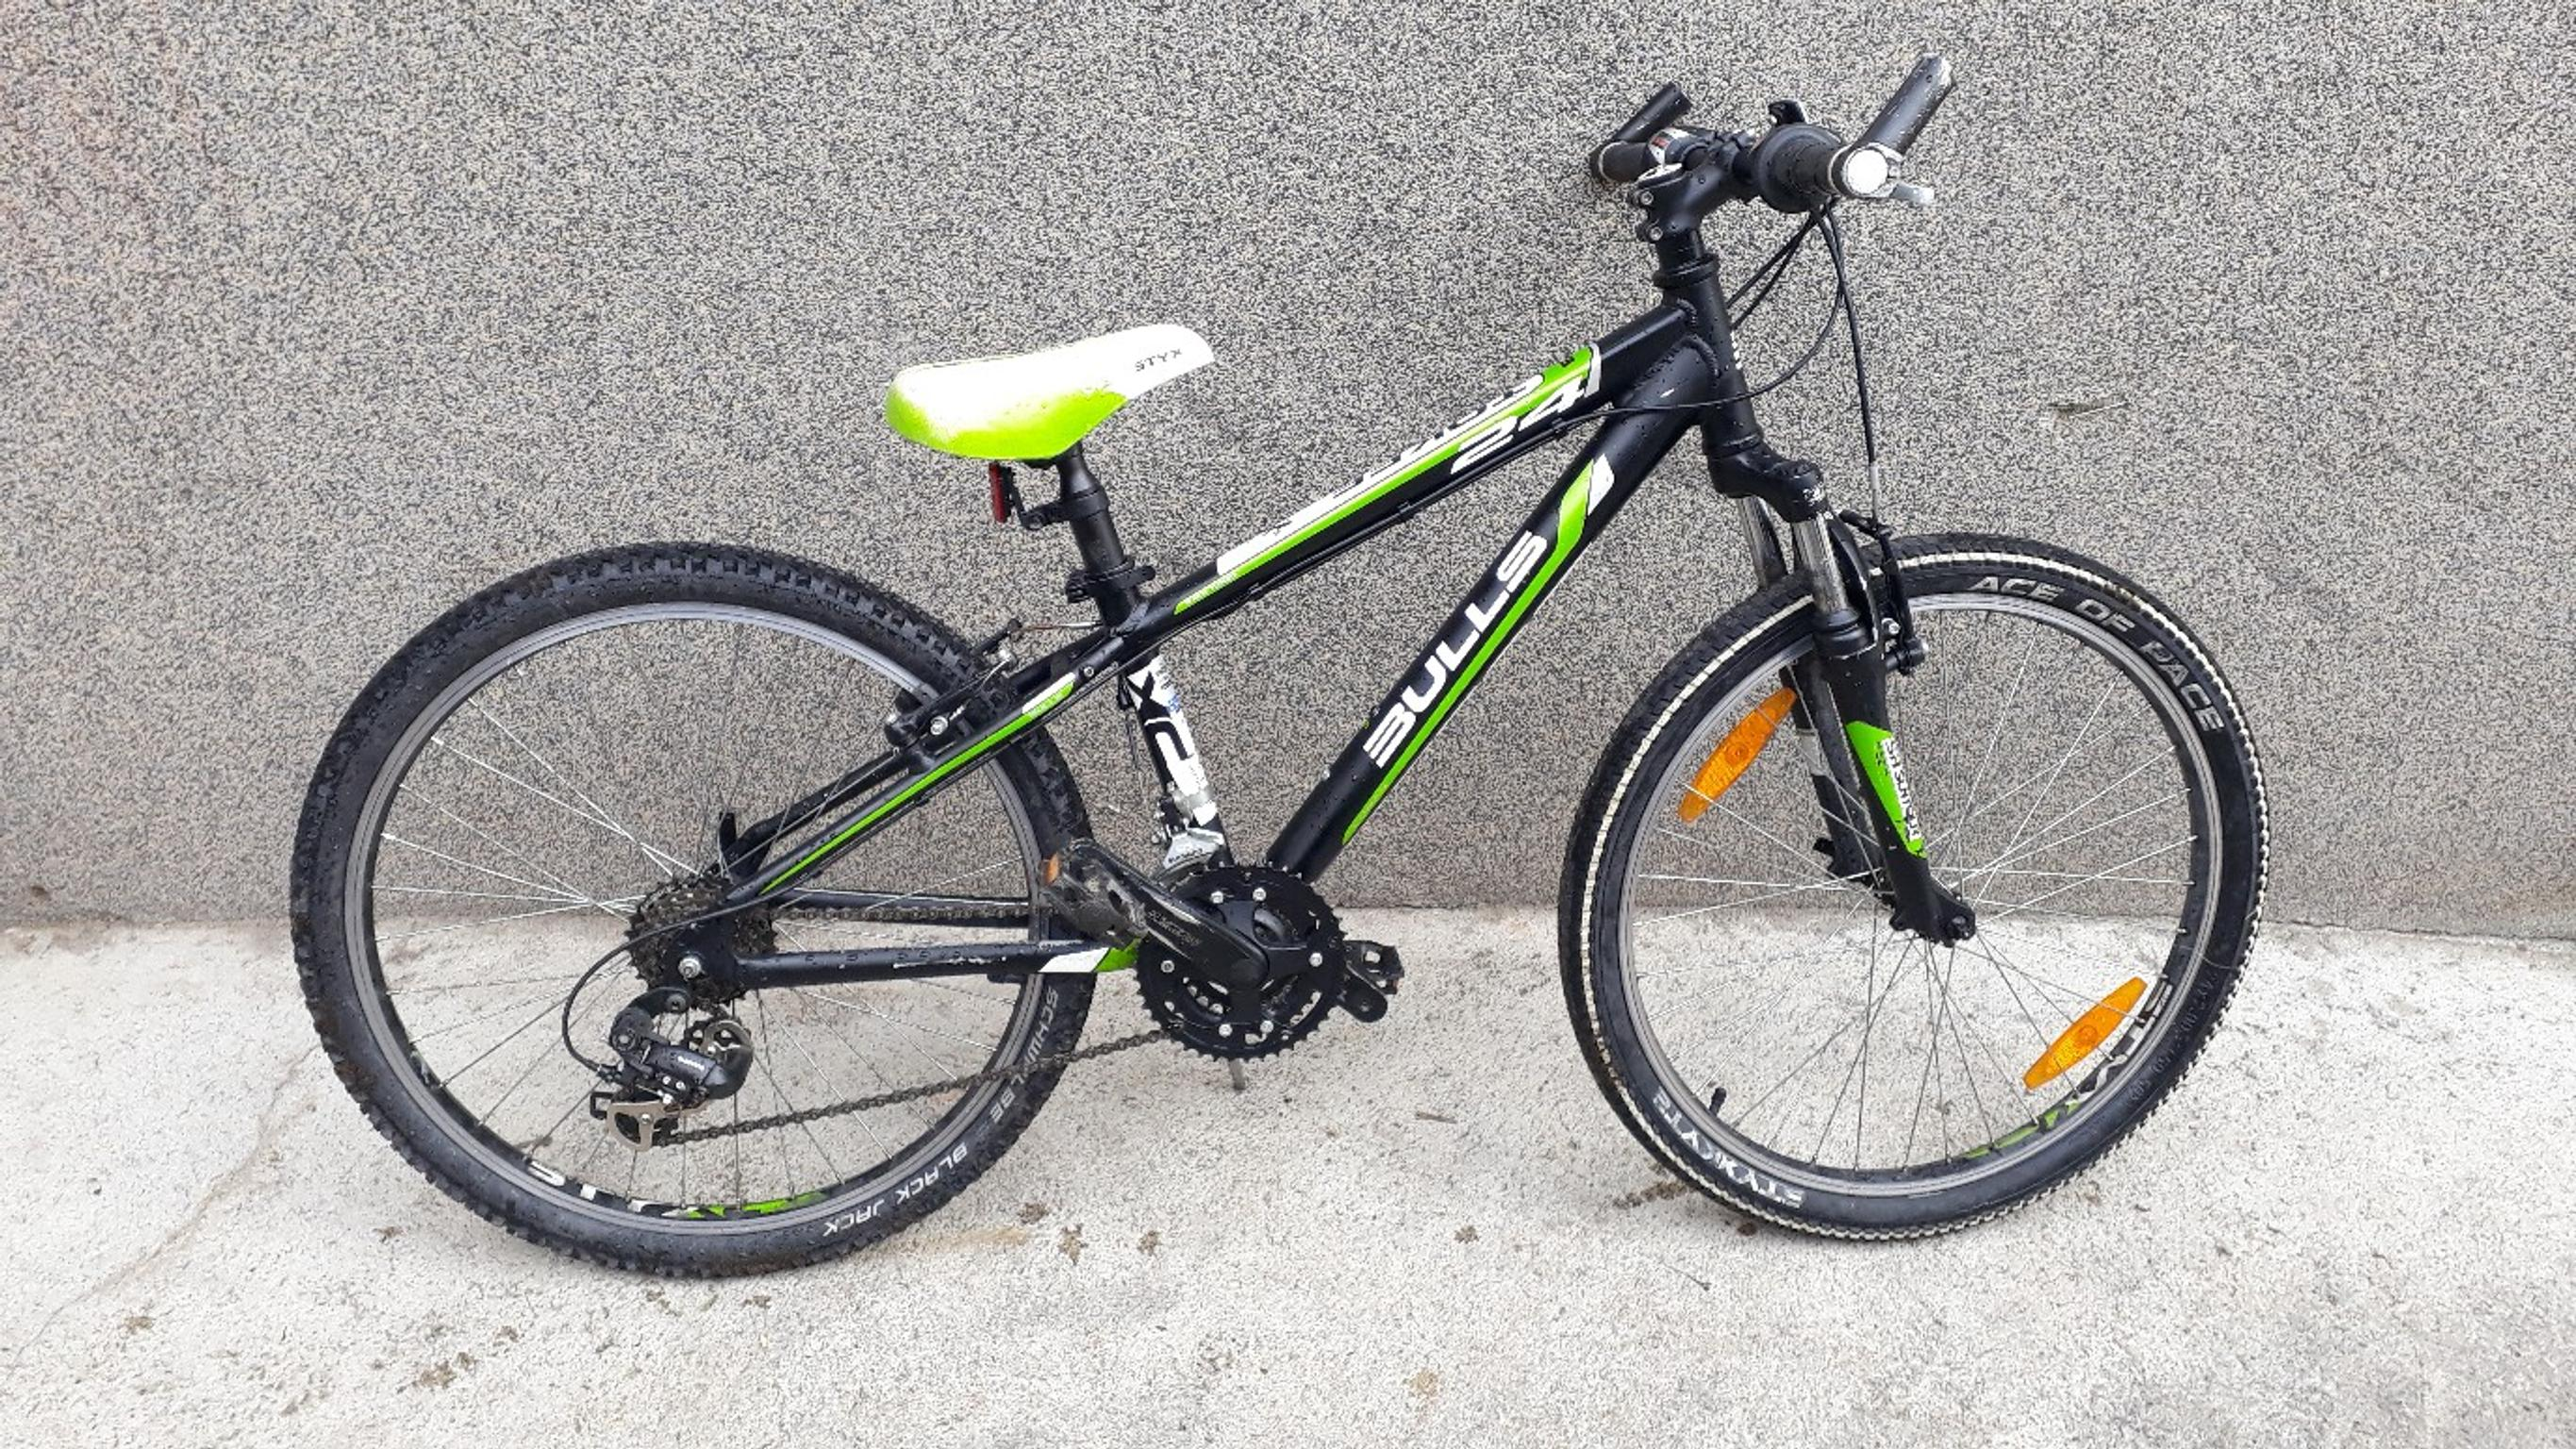 Kinder Mountainbike Fahrrad 20 Zoll X Fact in 6210 Wiesing